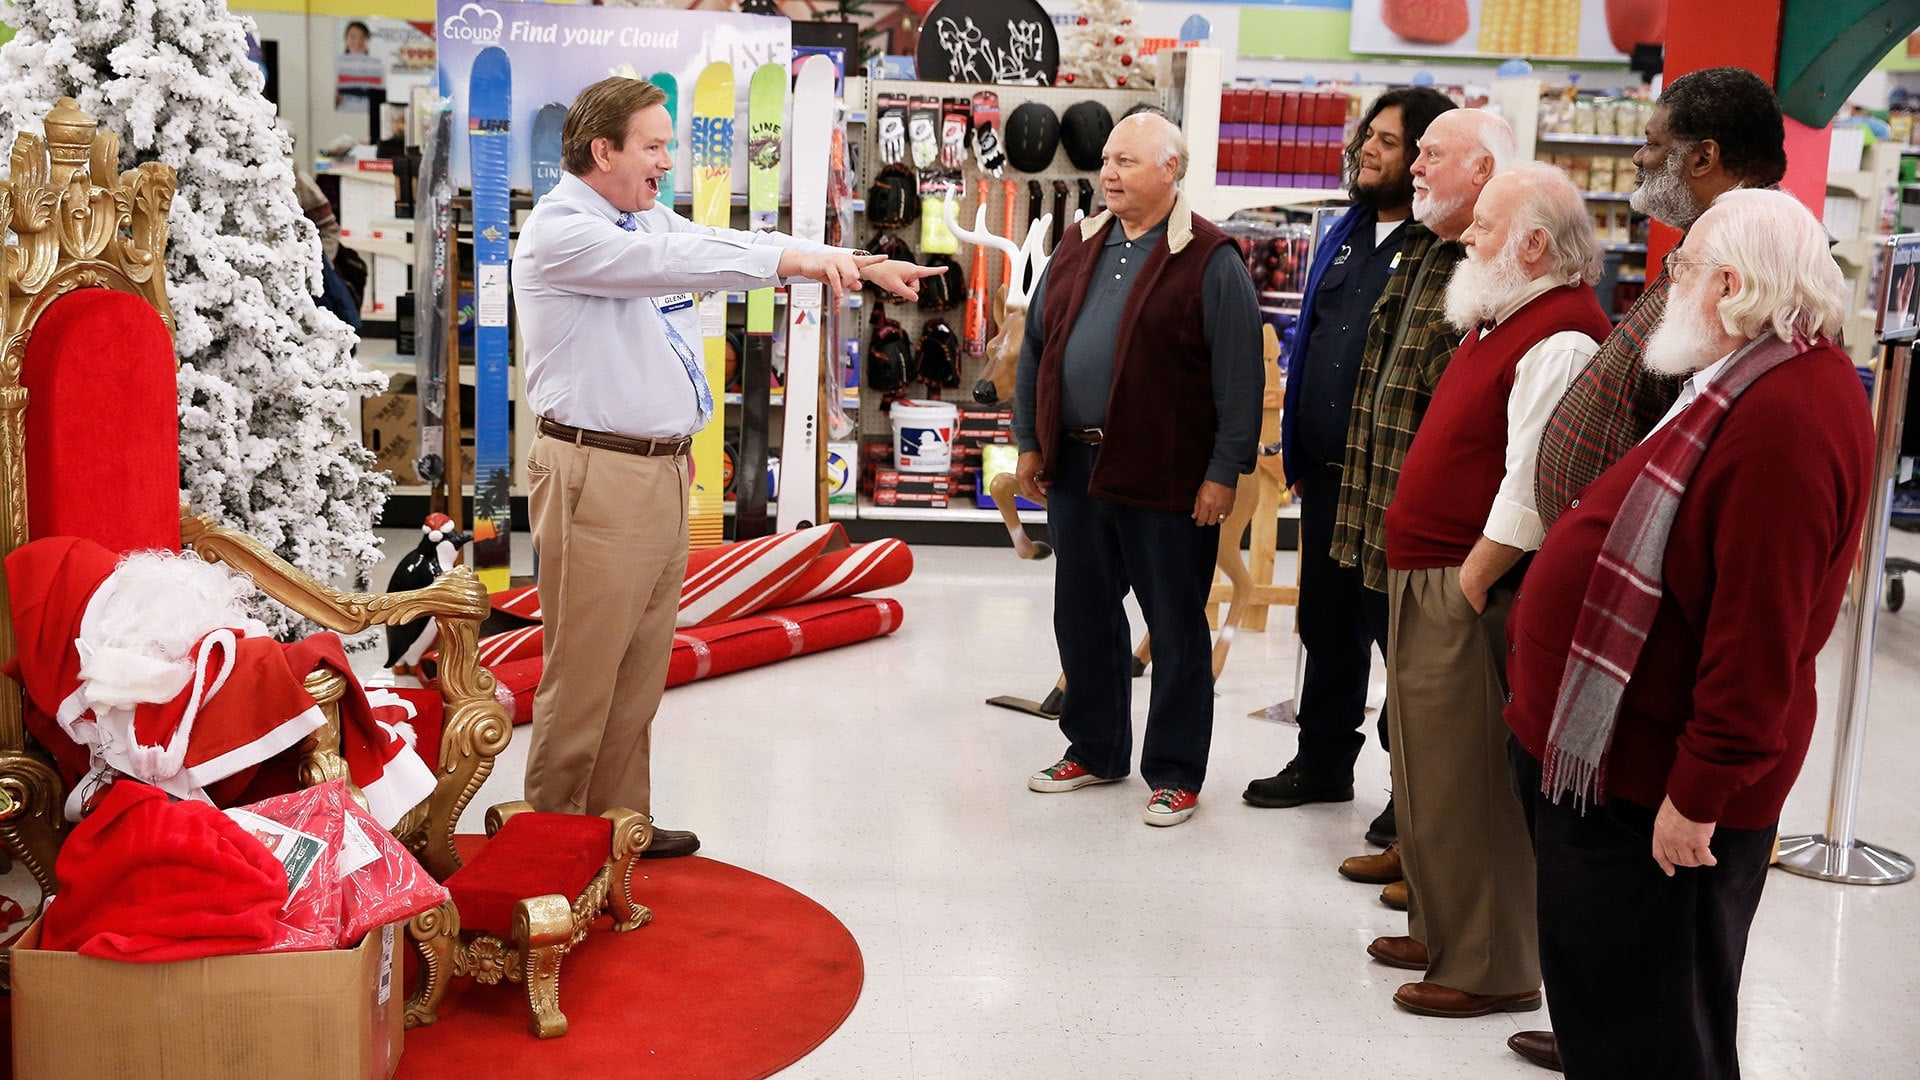 Superstore - Season 2 Episode 9 : Seasonal Help